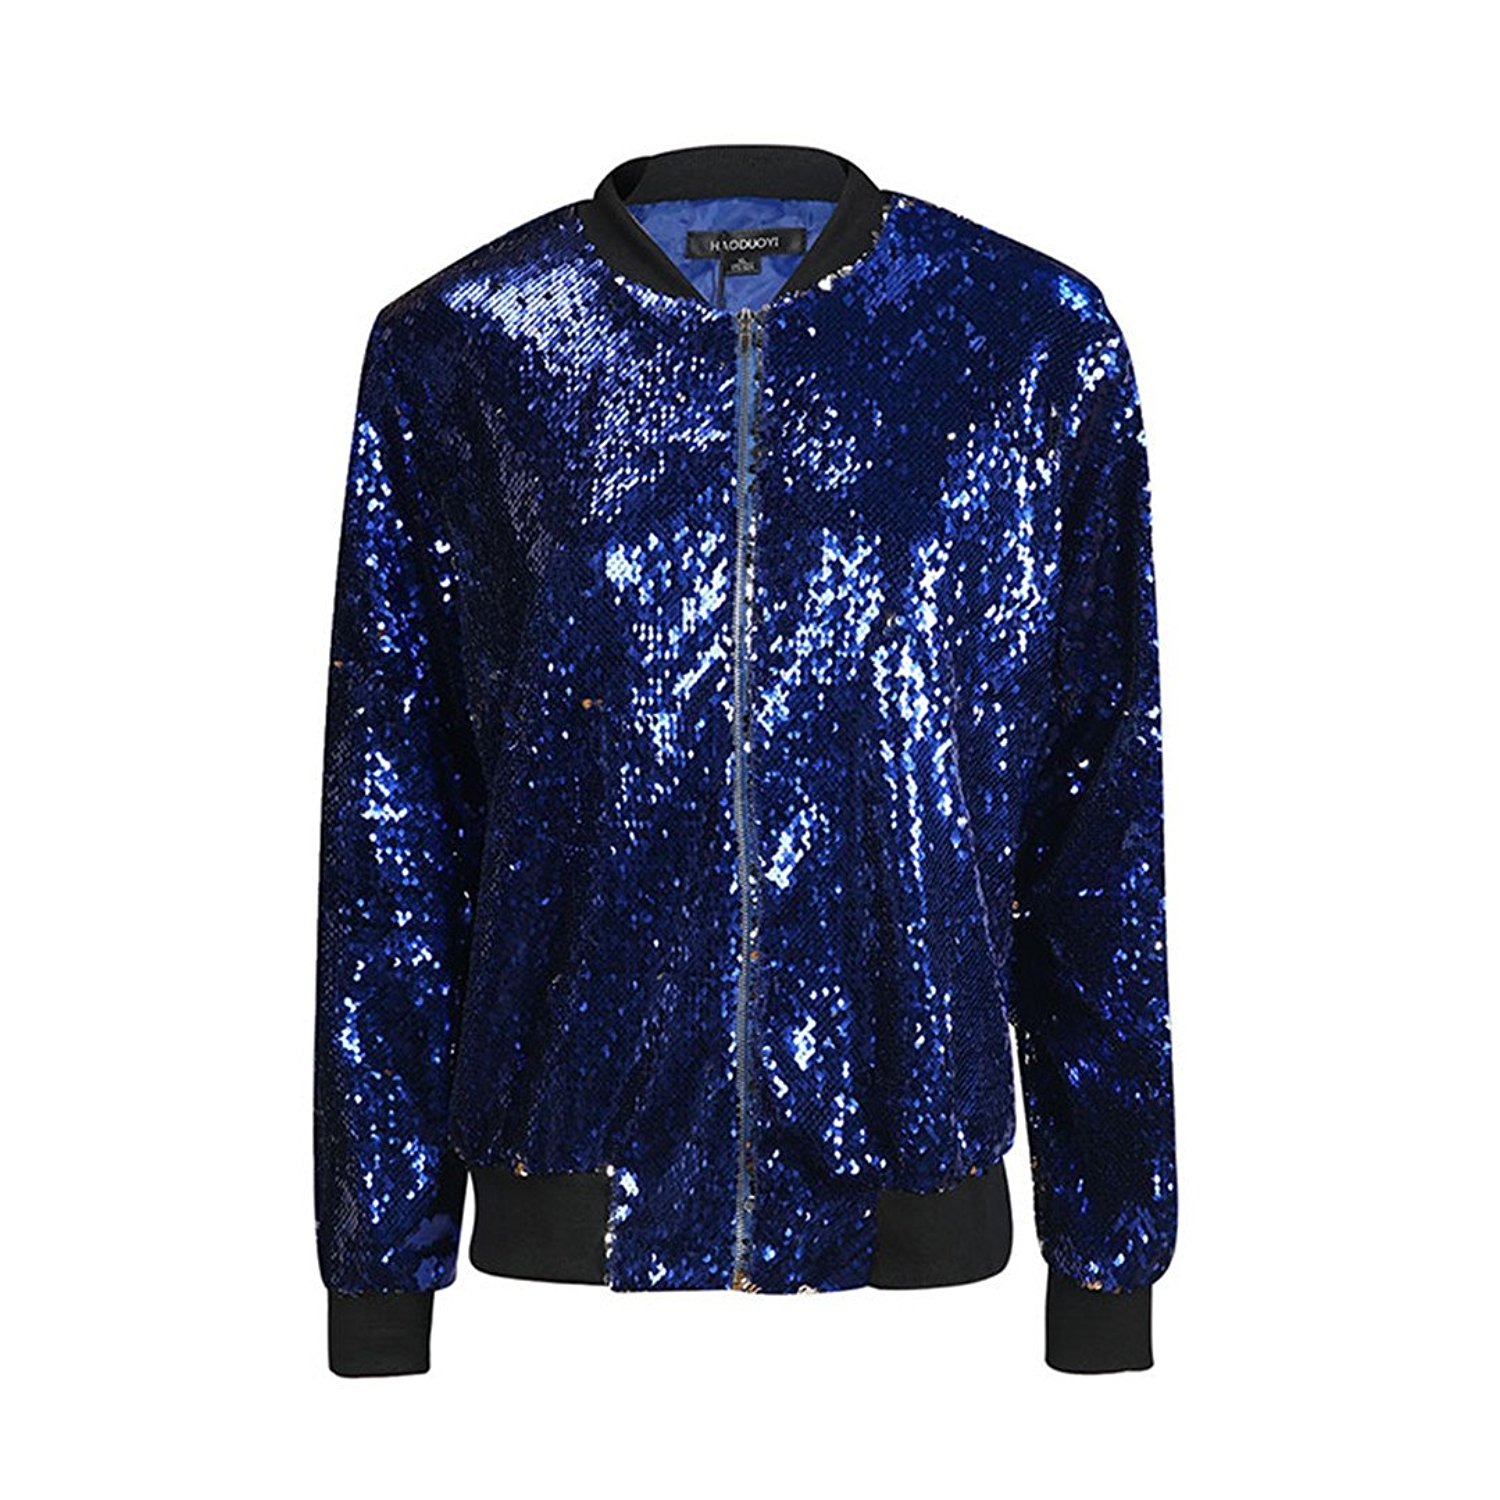 b8c4255294dd Get Quotations · bomberr Women s Sequined Jacket Green Bomber Jacket  Long-Sleeved Zip-Top Street Jacket